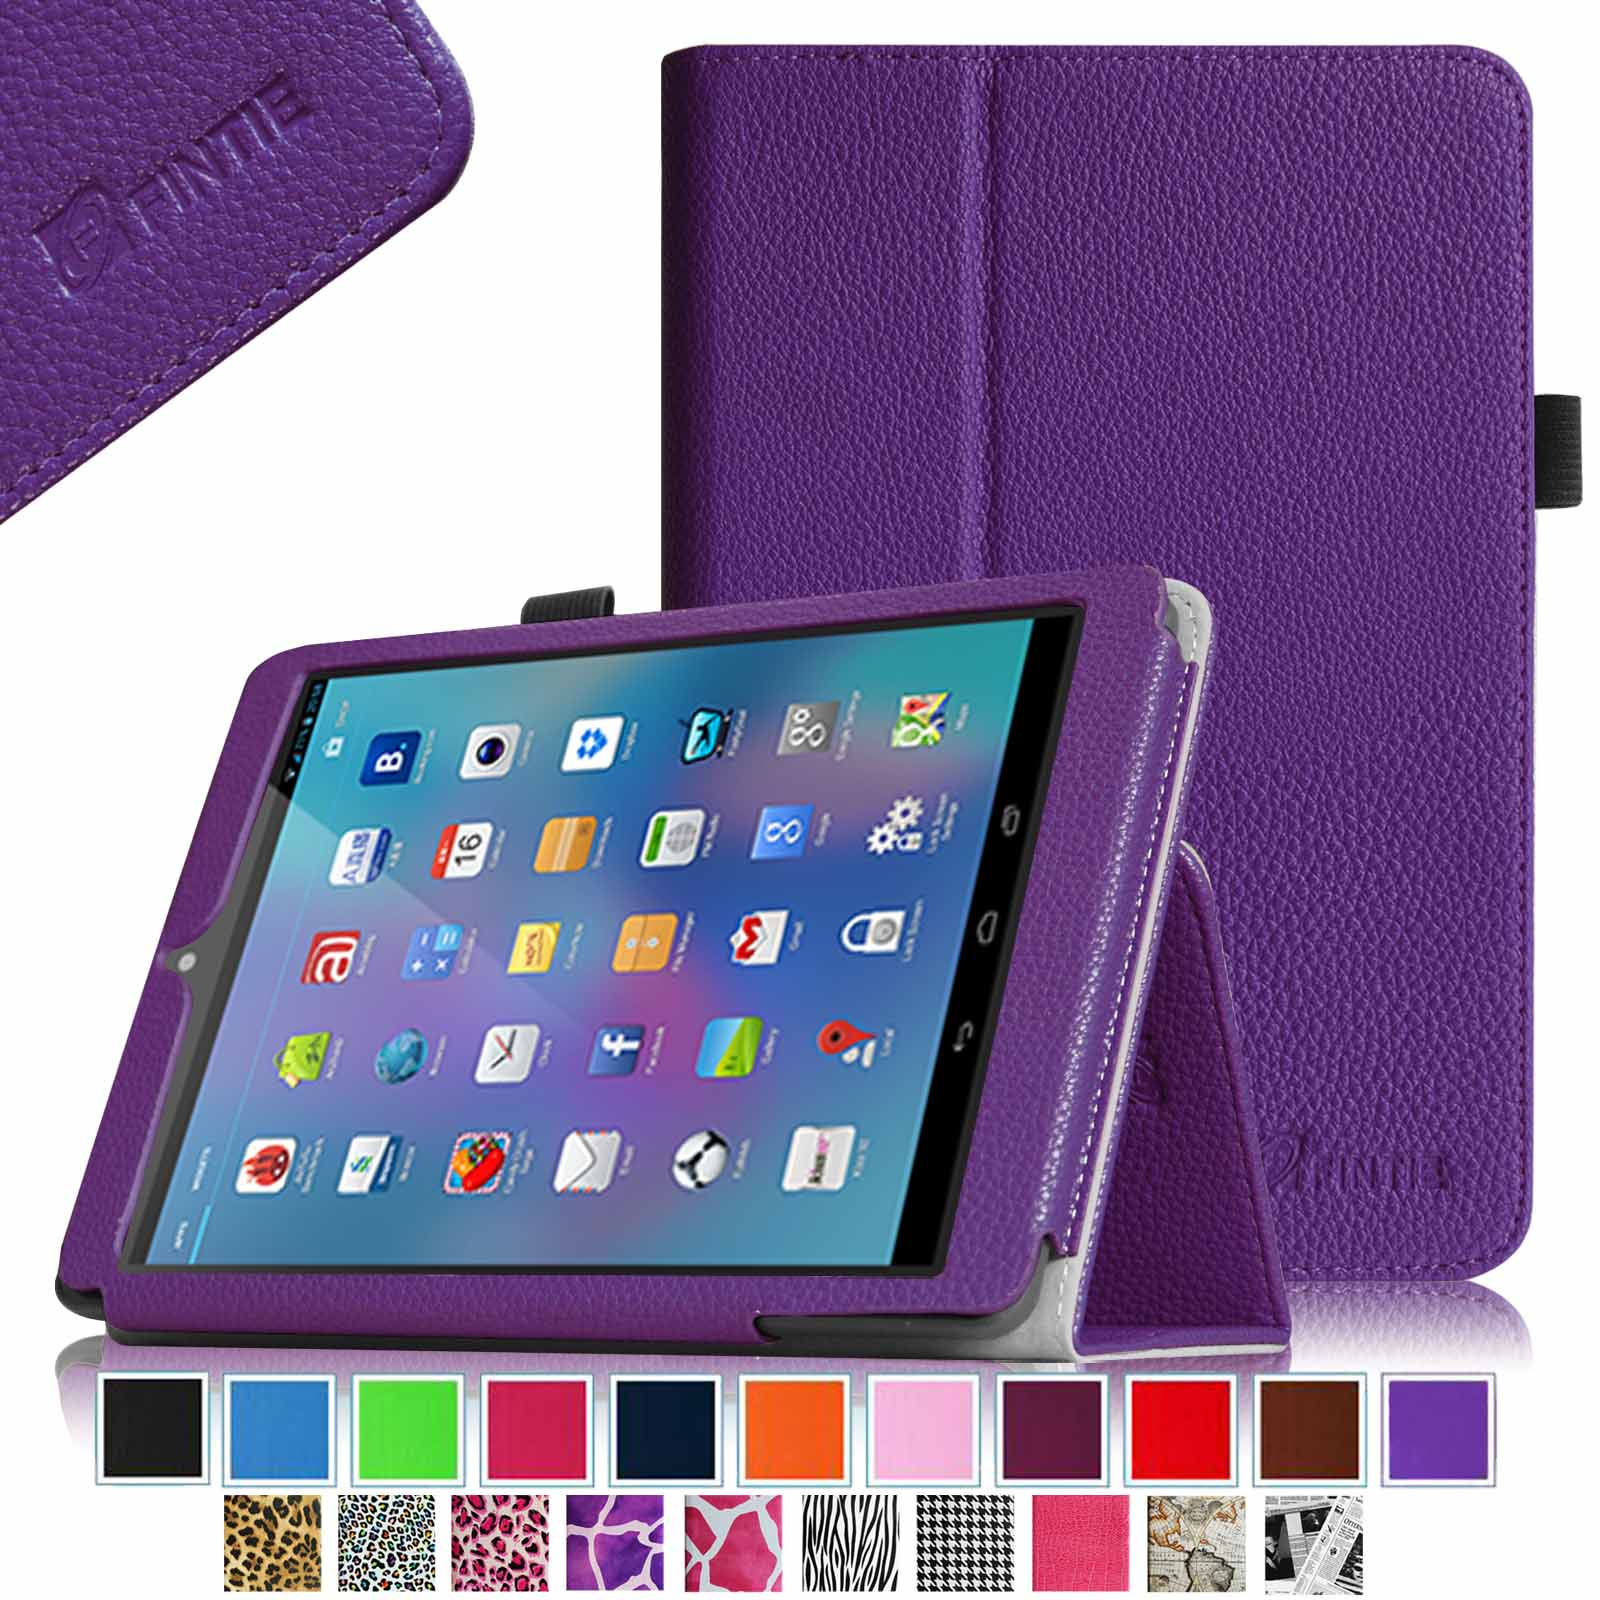 Fintie Premium PU Leather Case Cover with Stylus Holder For Nextbook 8 (NX785QC8G) 7.85